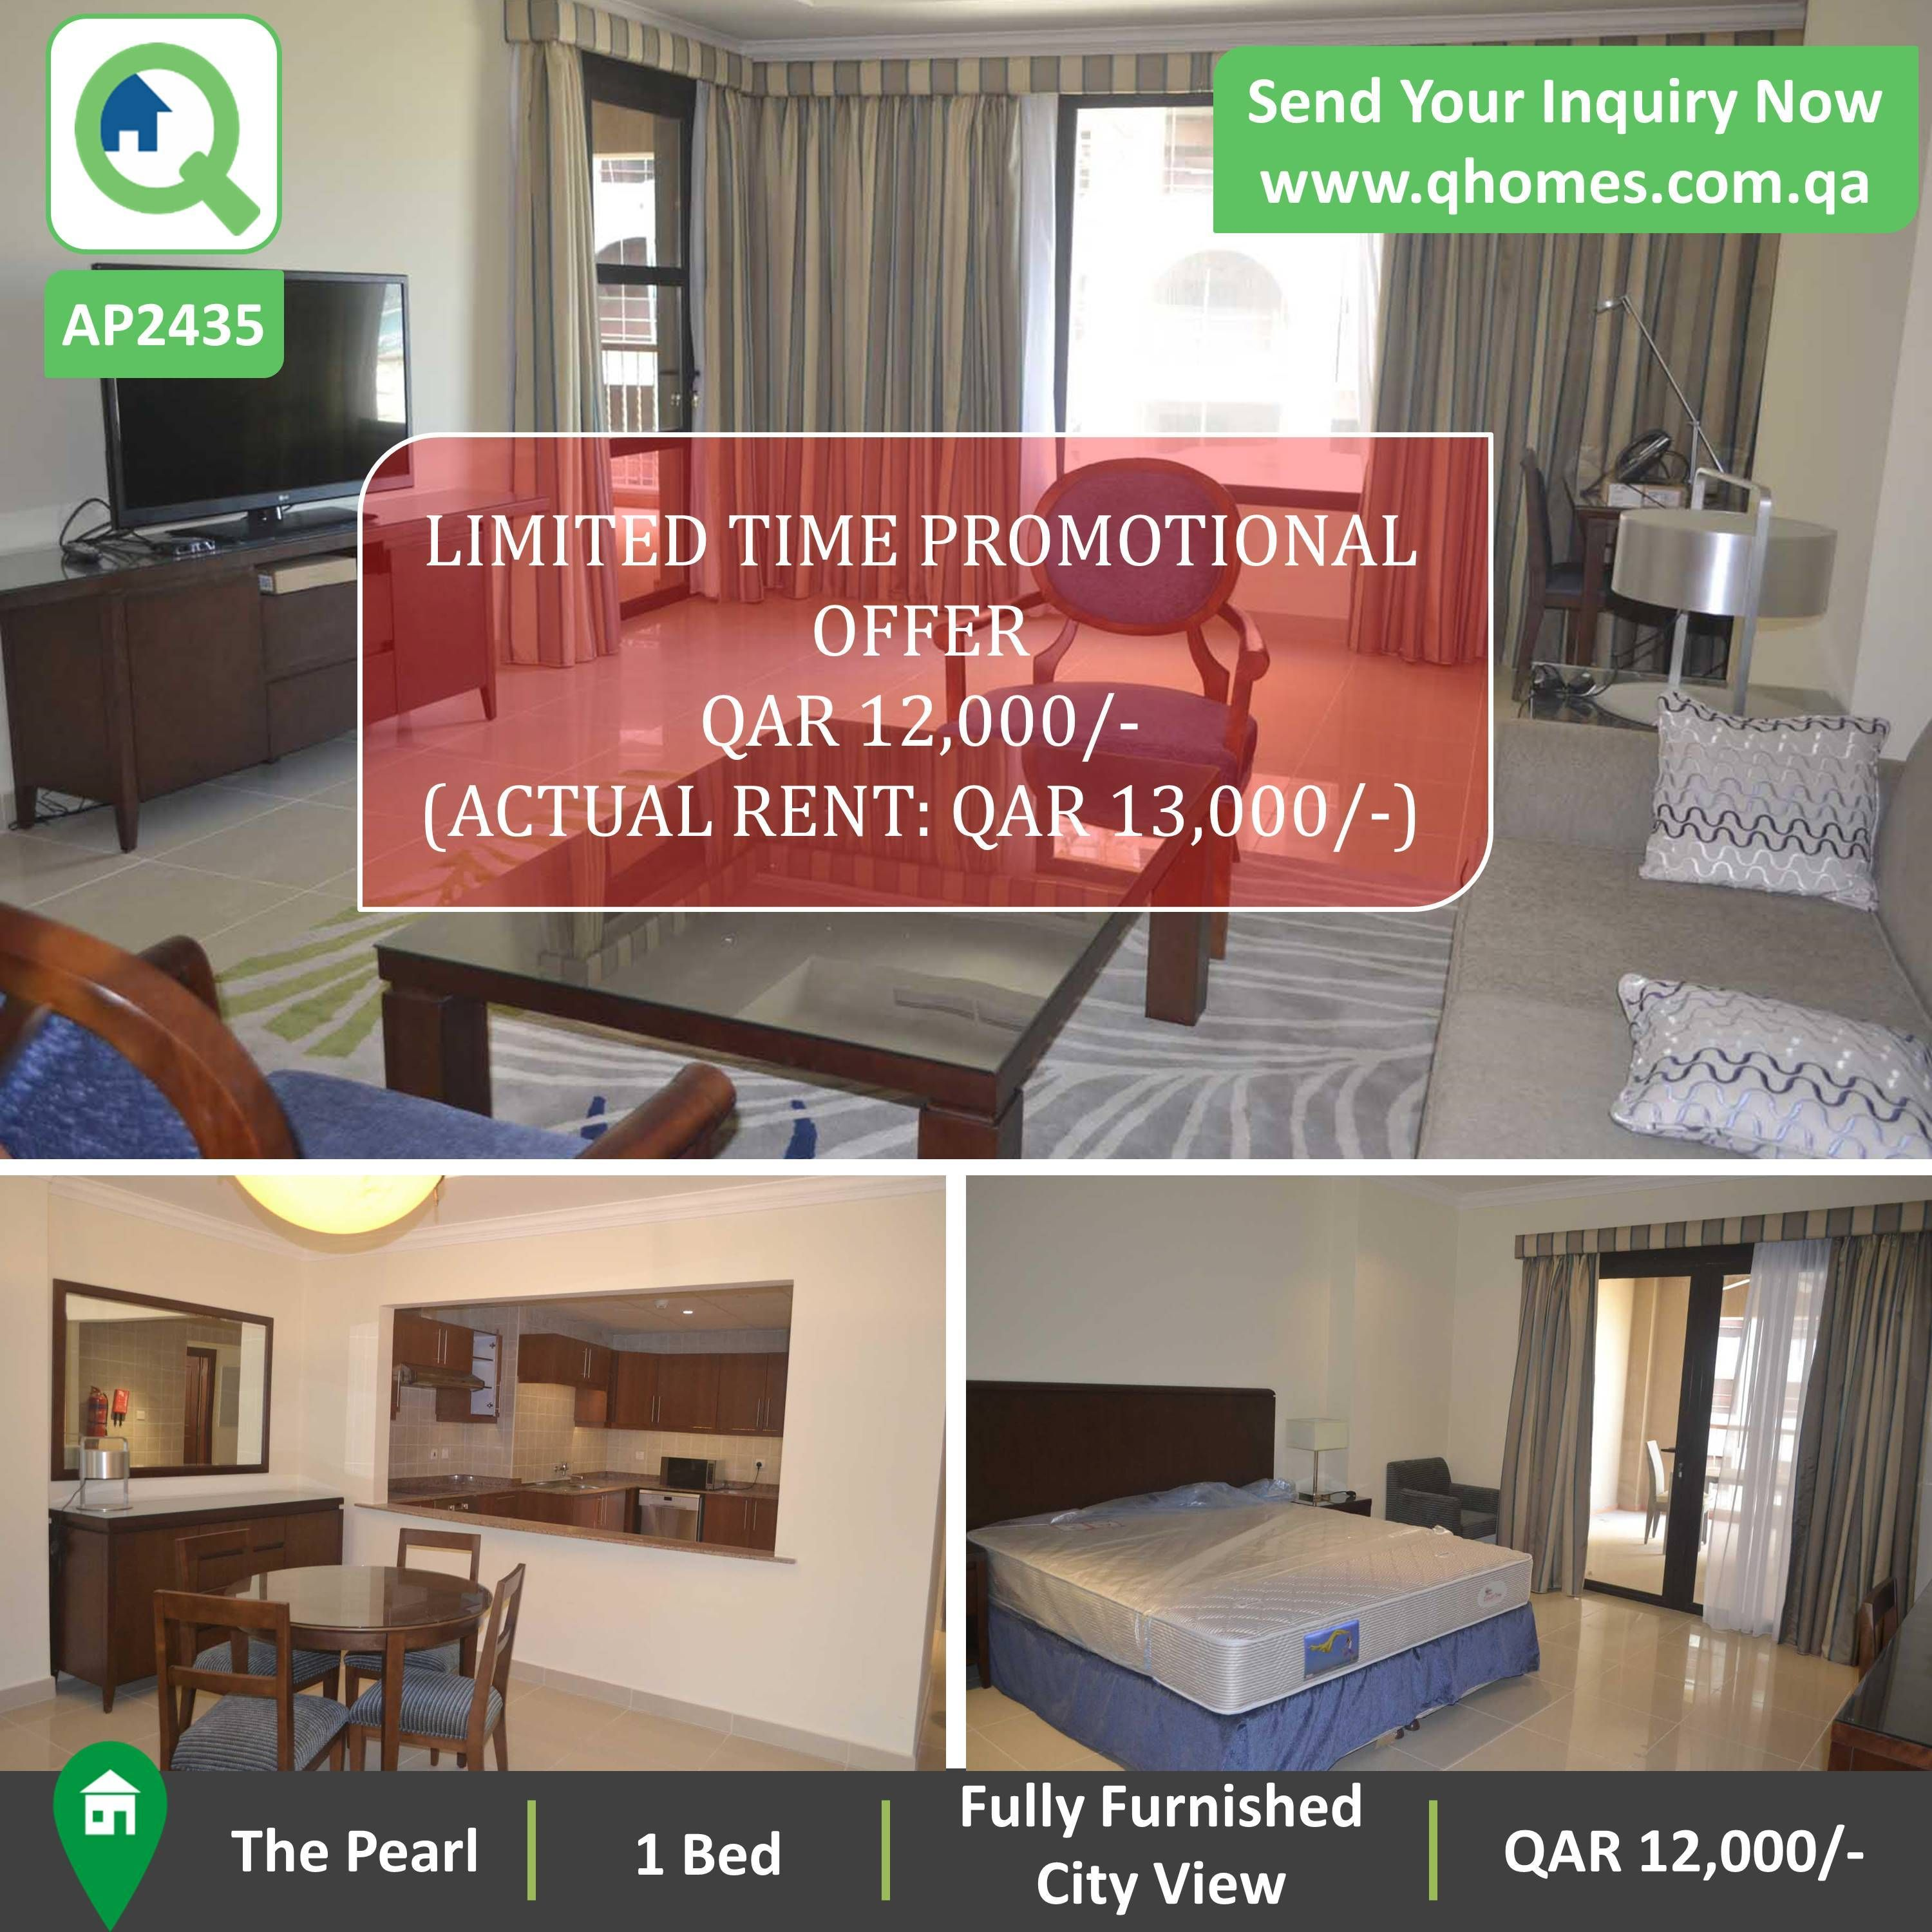 1 Bedroom Apartments For Rent Near Me: Apartment For Rent In Pearl Qatar: Fully Furnished 1